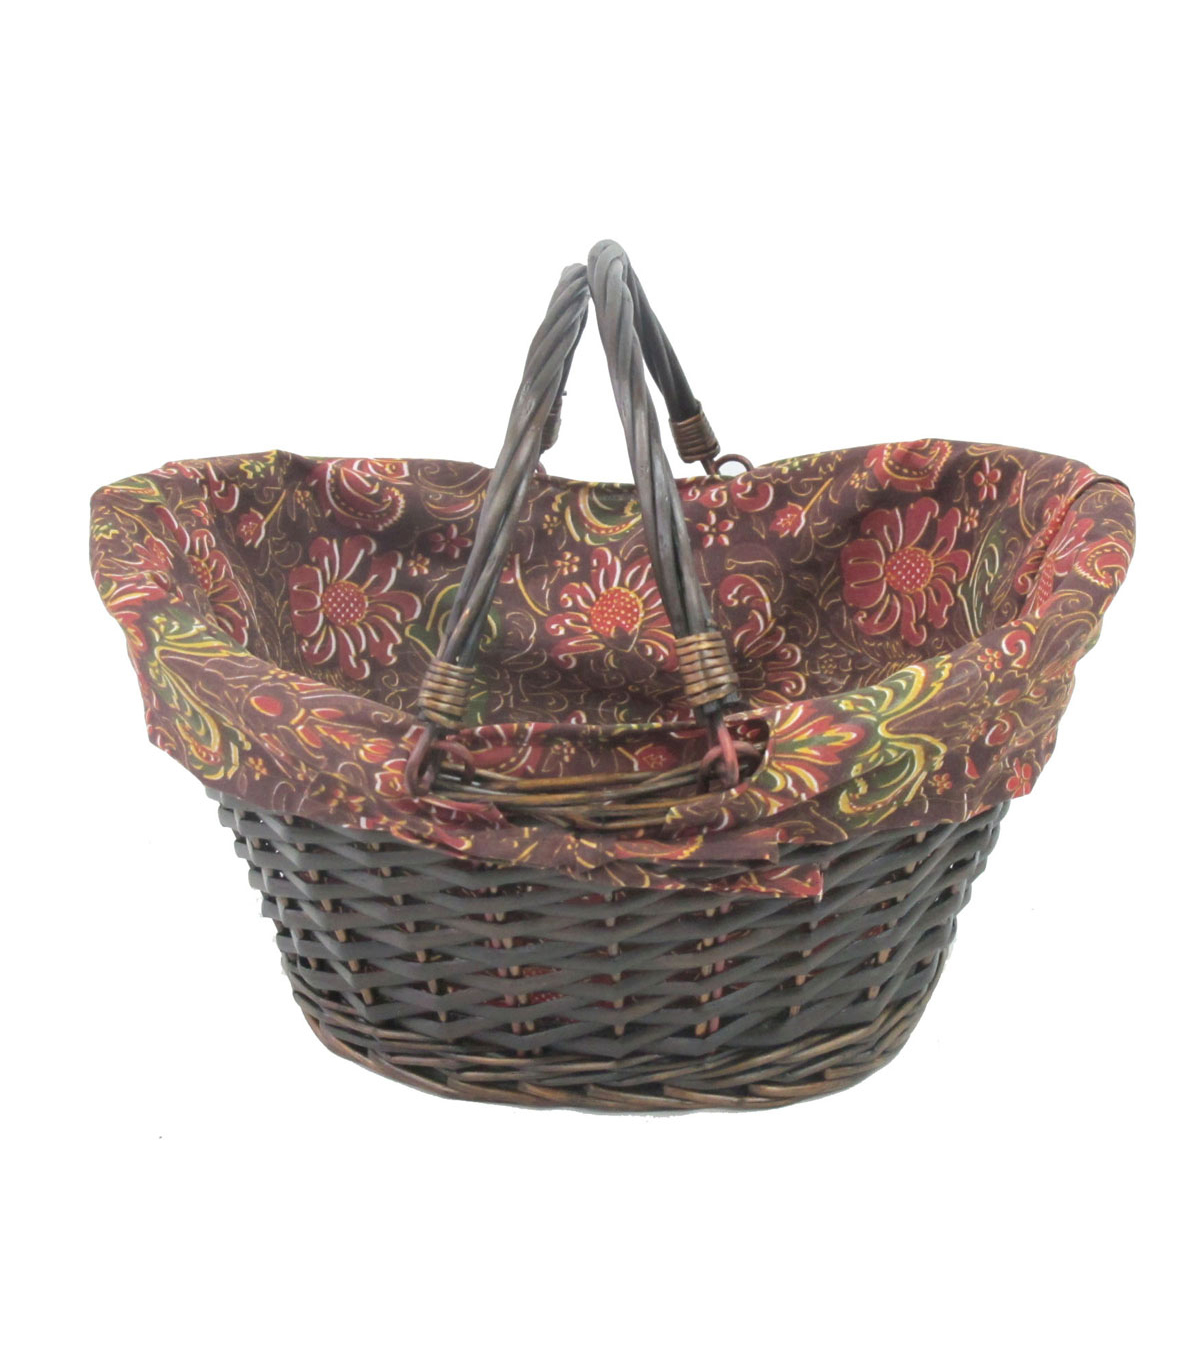 Organizing Essentials™ Lined Willow Basket with Handles